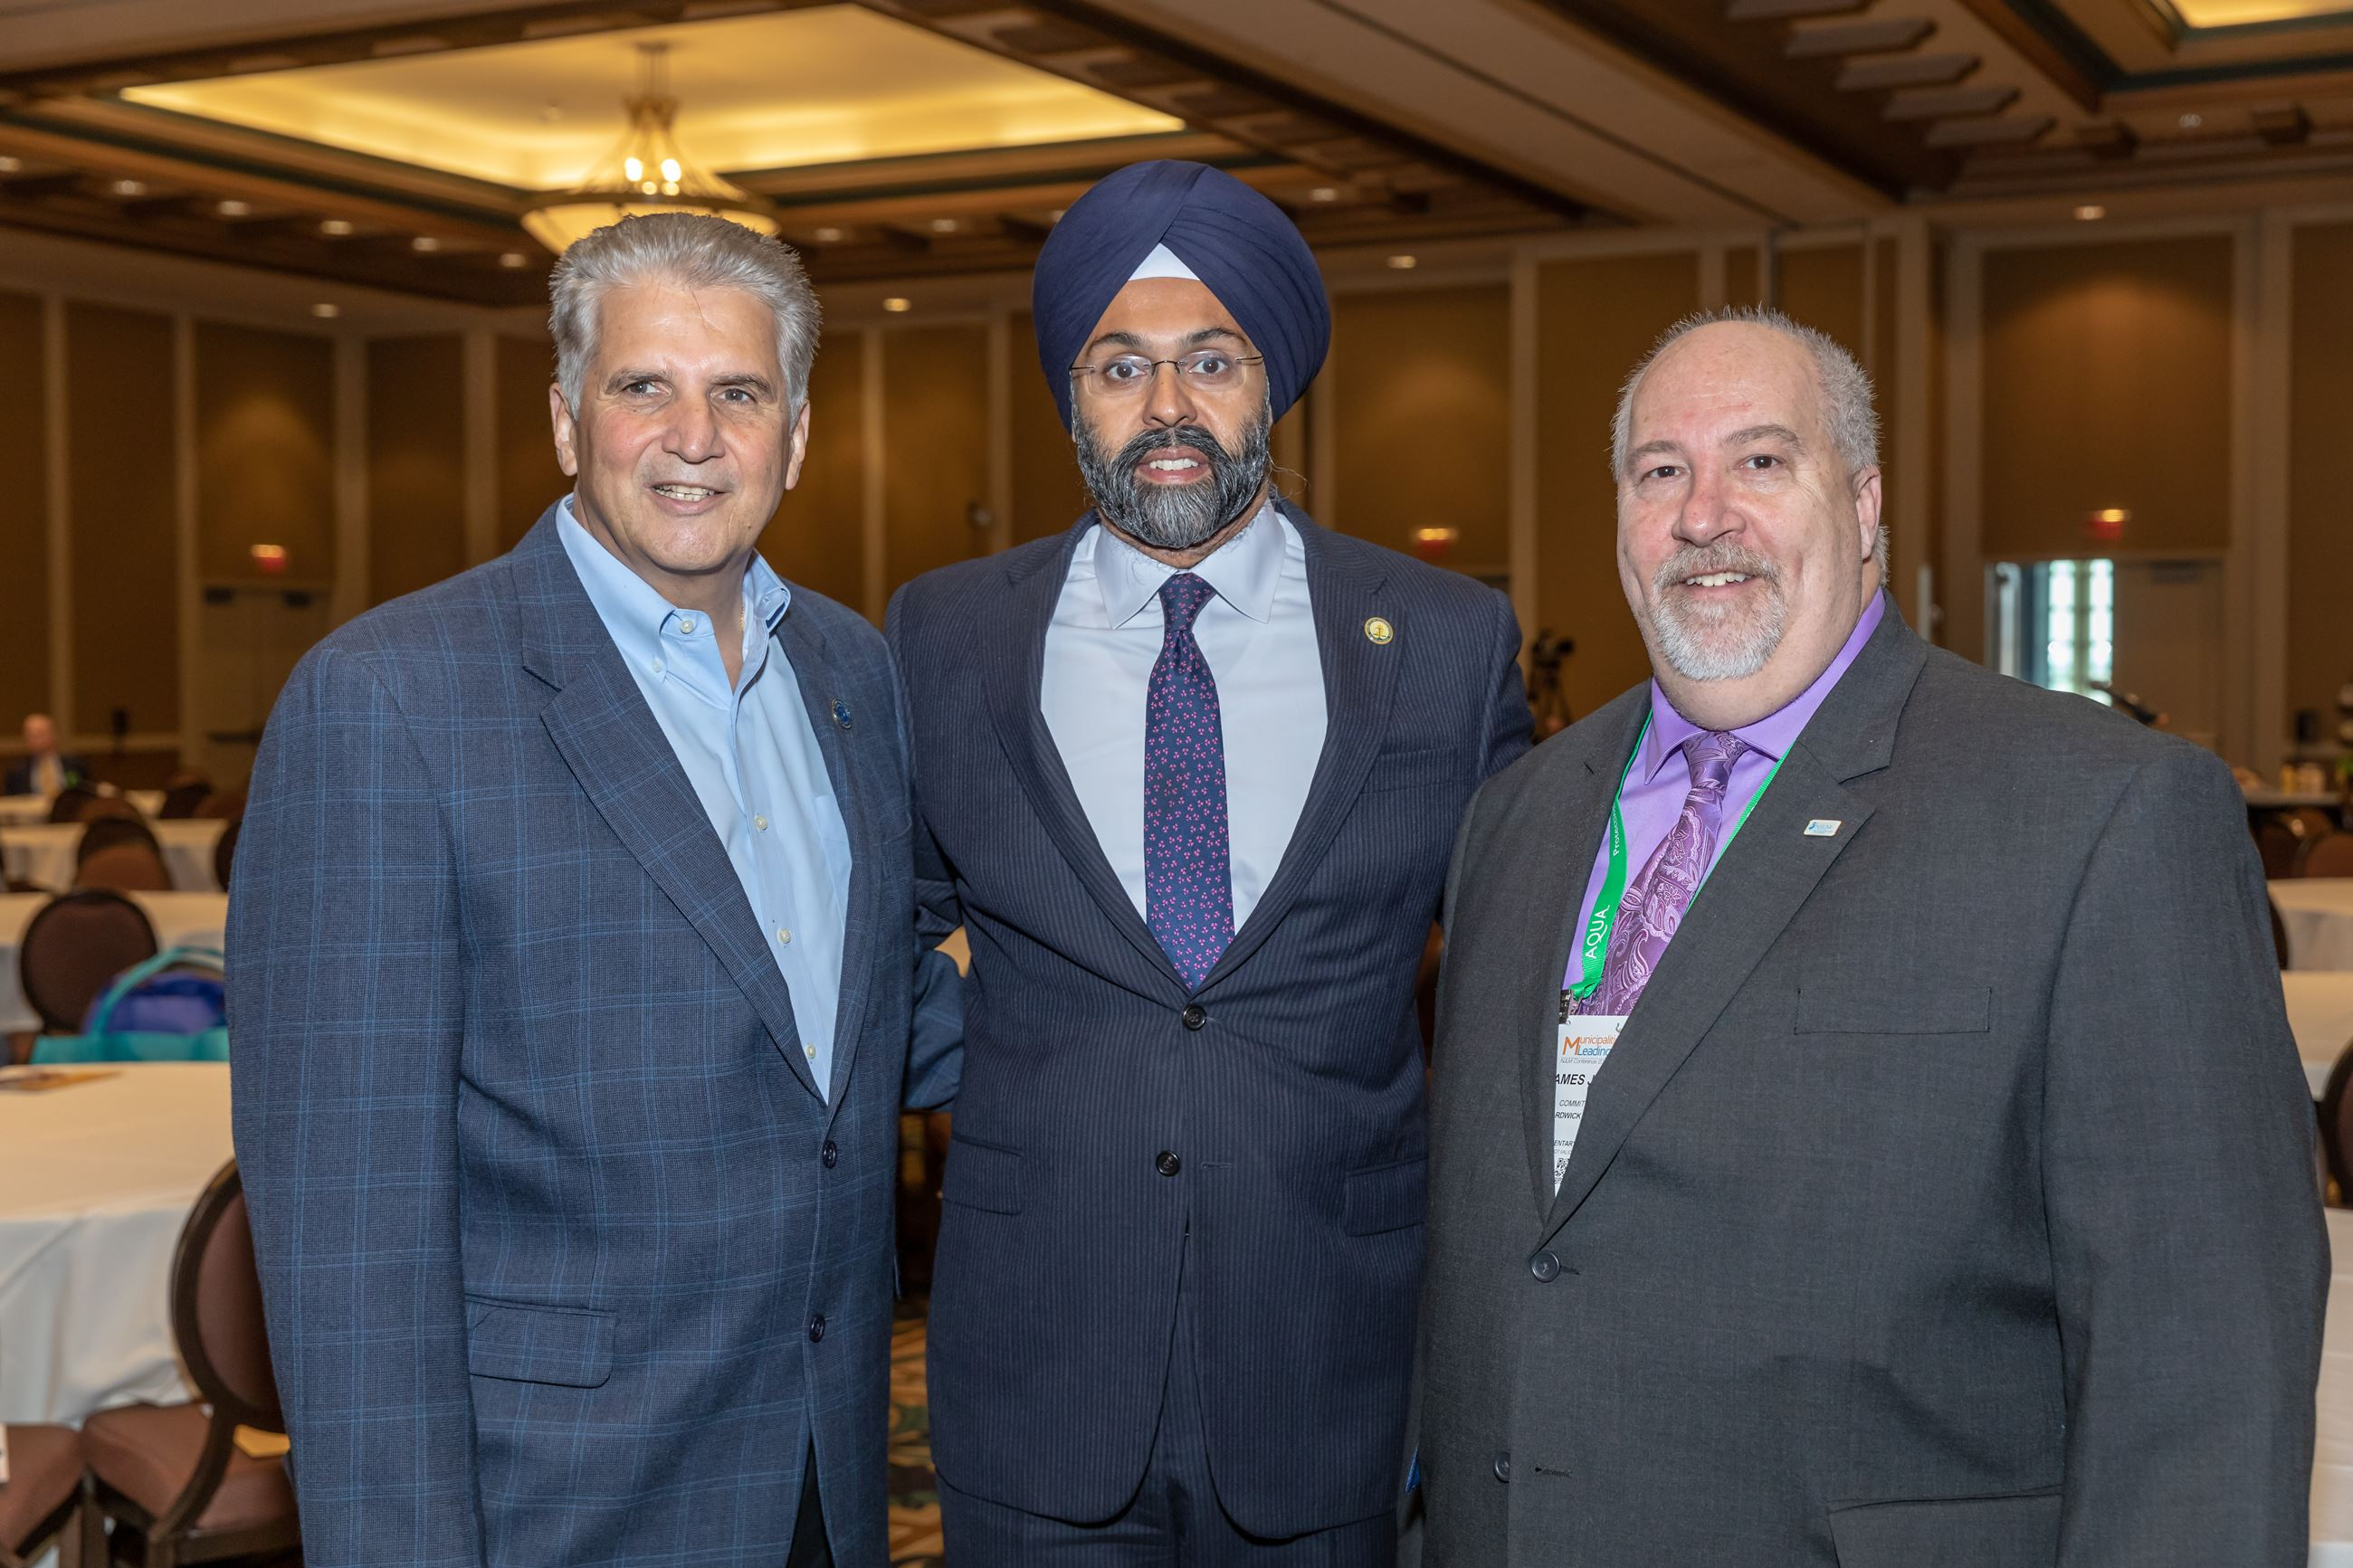 Essex County Executive Joe DeVincenzo, NJ AG Gurbir Grewal, NJLM 2nd VP Committeeman Jim Perry